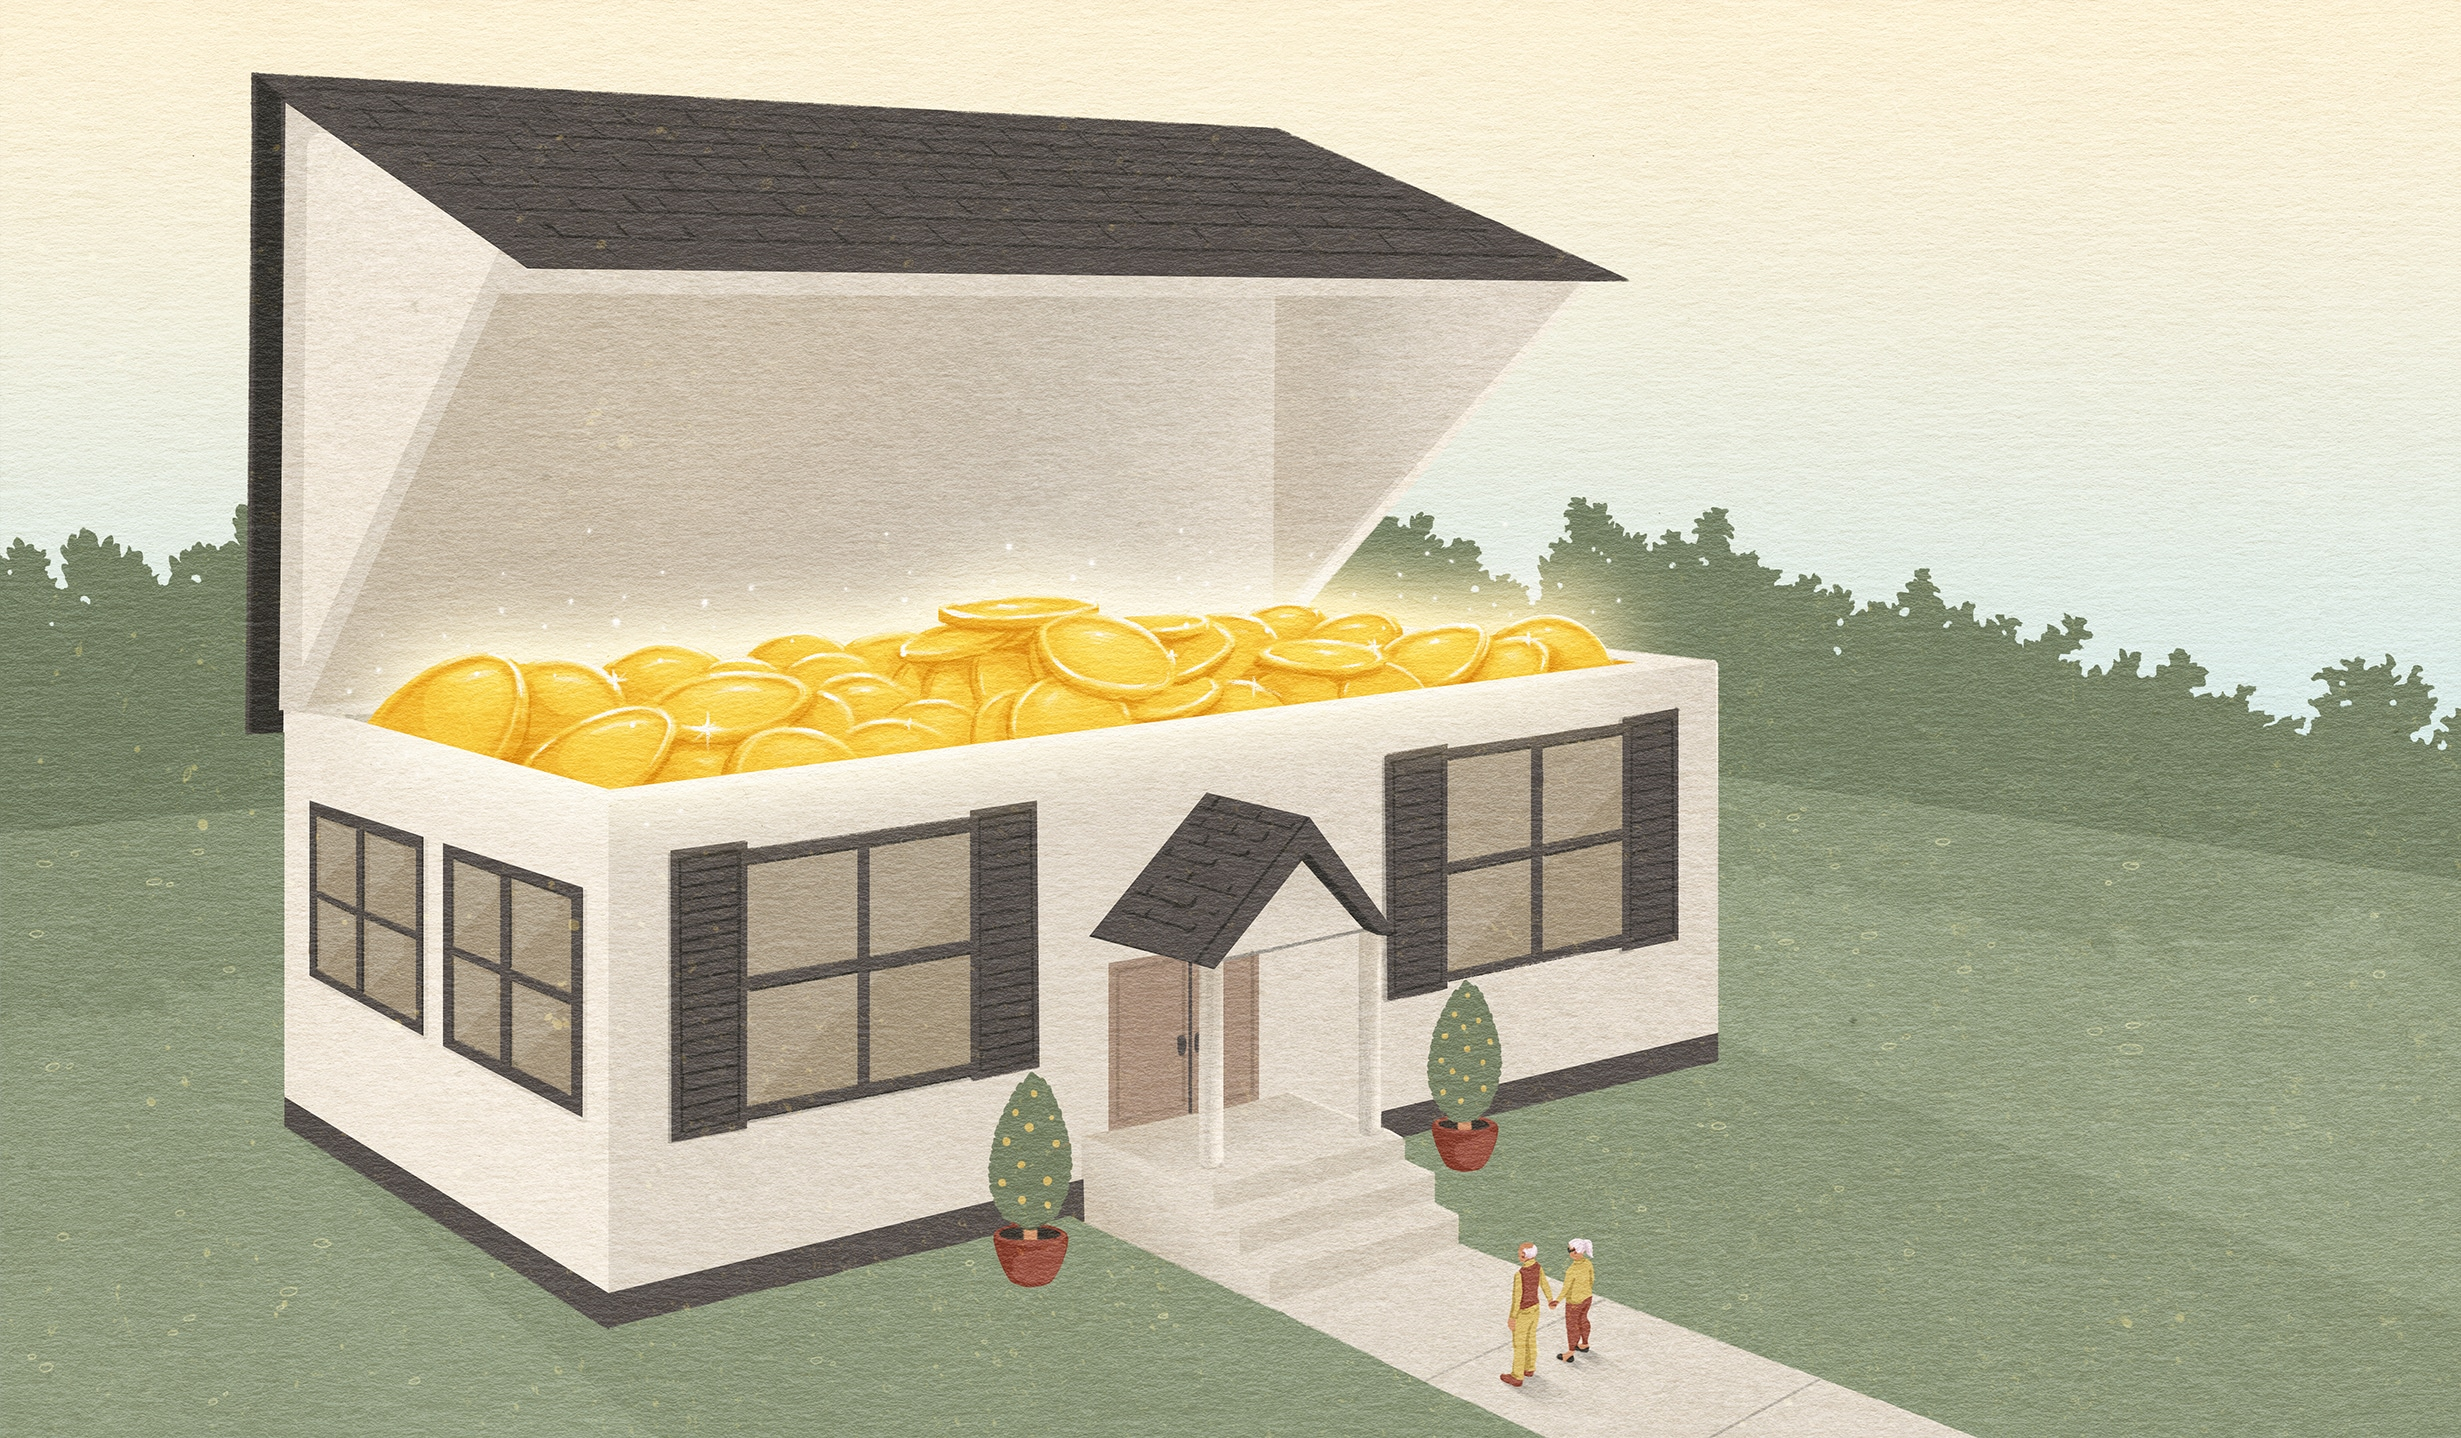 Illustration of a house opening like a treasure chest to reveal shiny gold coins inside. The couple that owns the house stands in front of it.